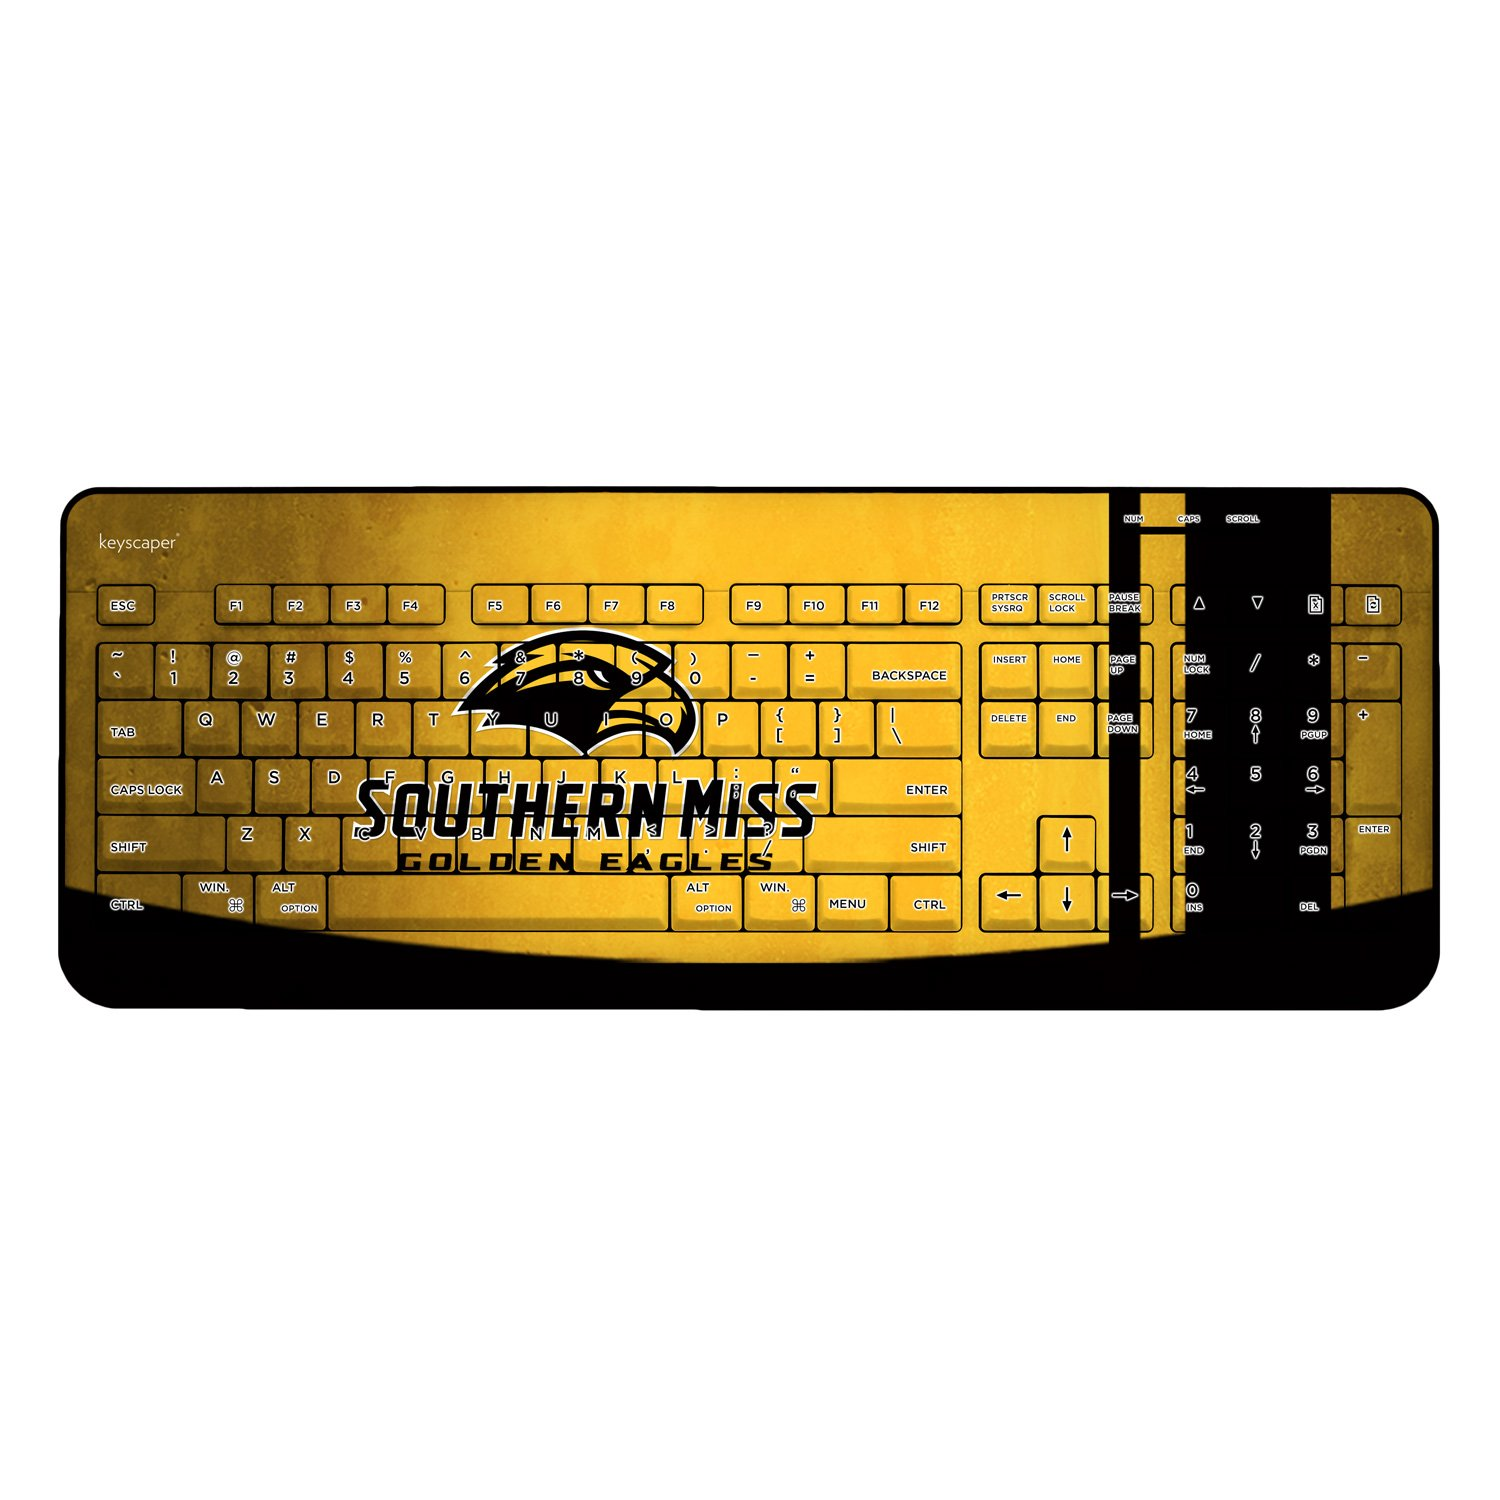 Southern Mississippi Golden Eagles Wired USB Keyboard NCAA by Keyscaper